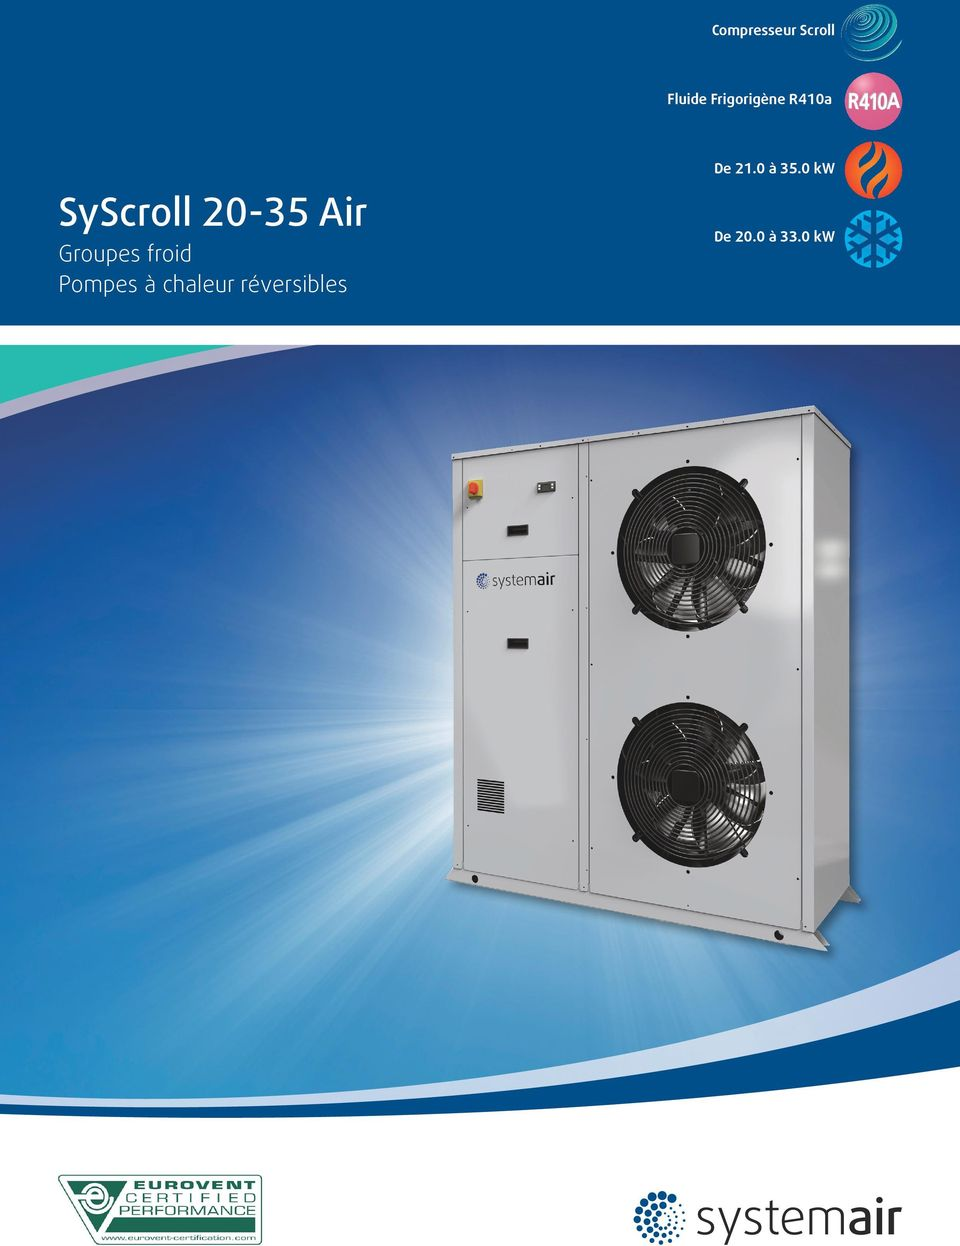 0 kw ycroll 20-35 ir Groupes froid